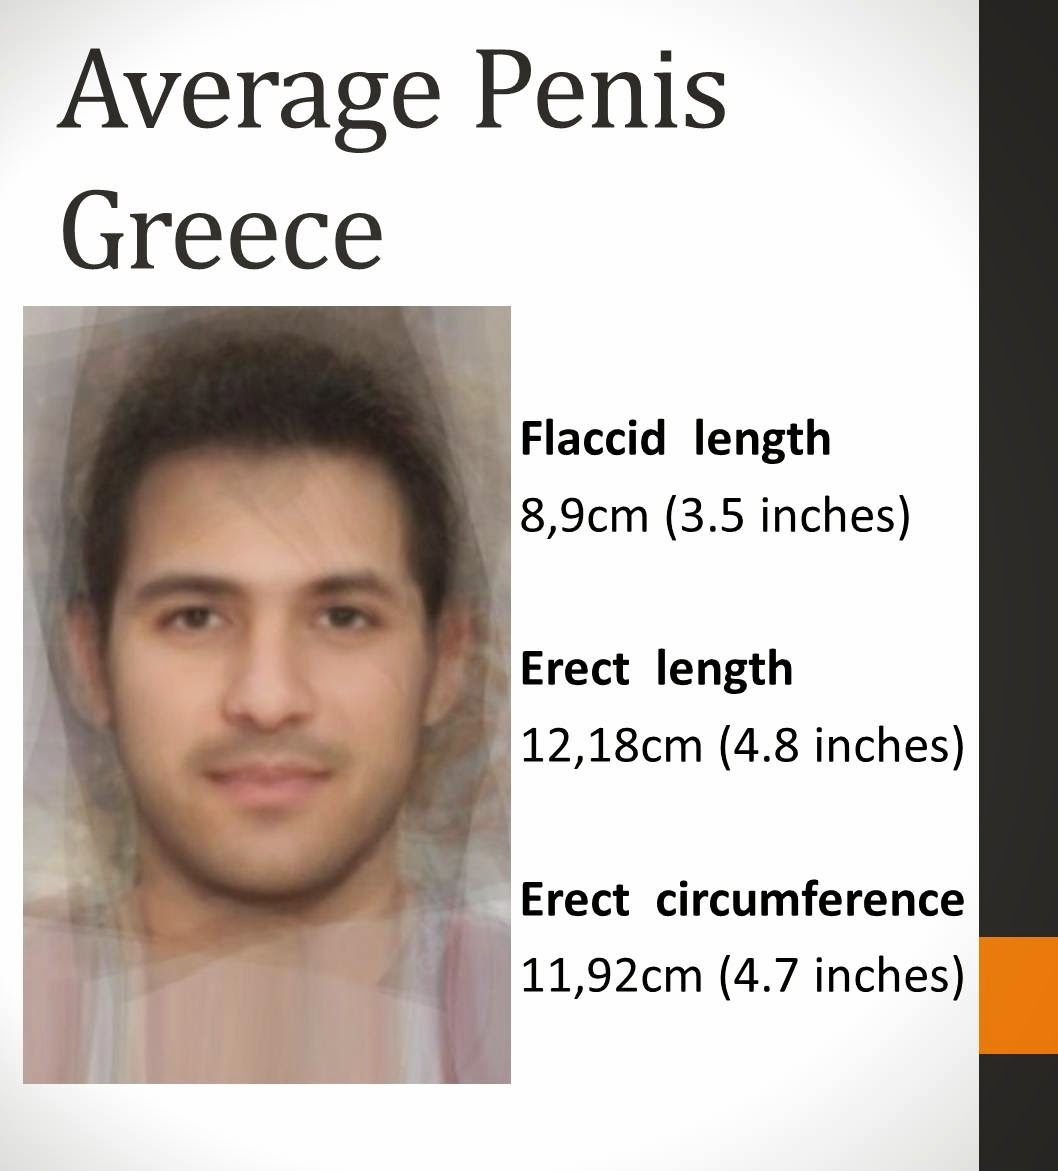 Penis Size Based On Country